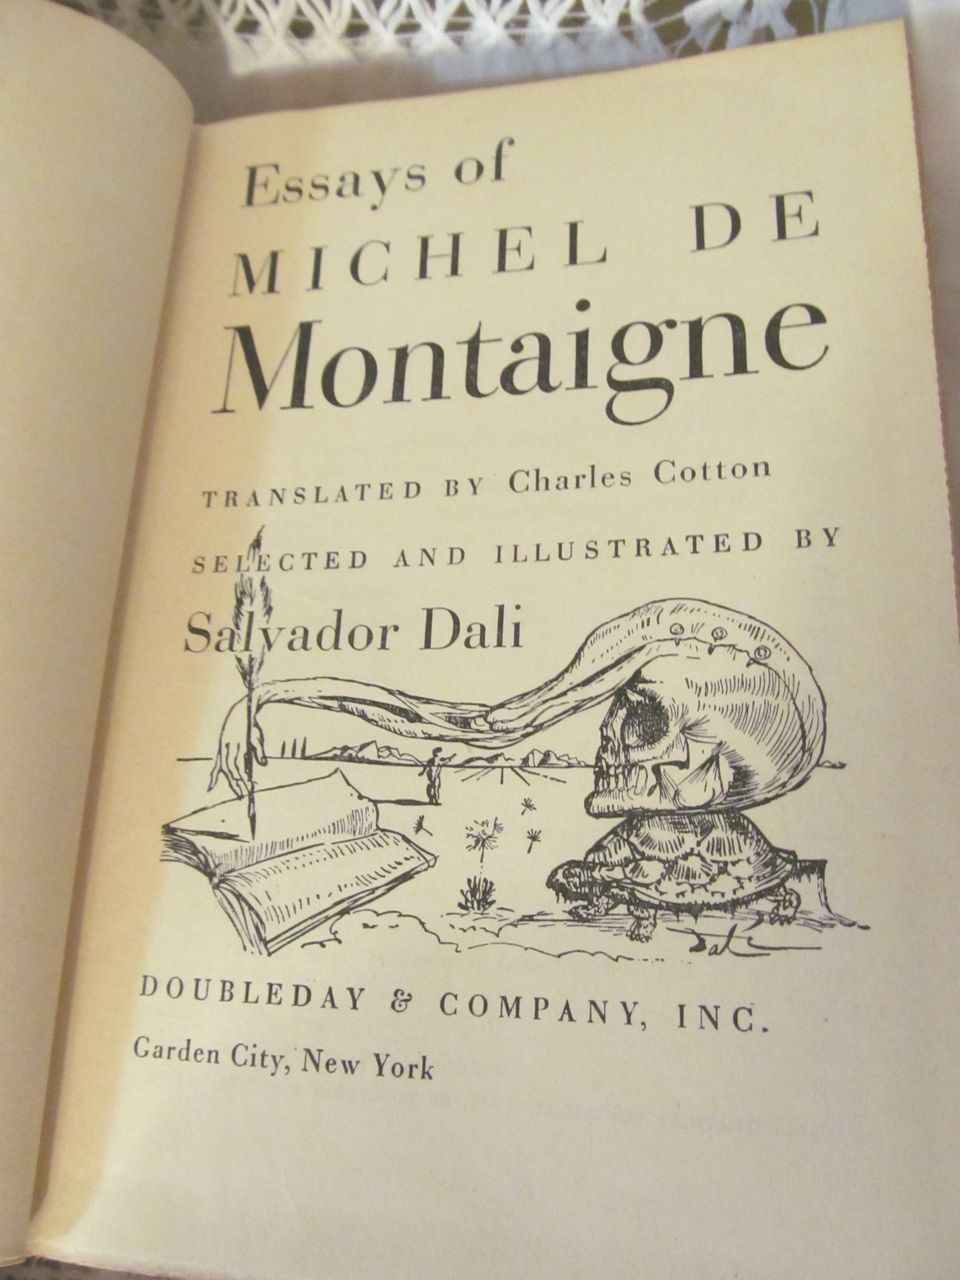 1947 essays of michel de montaigne illustrated by salvador dali